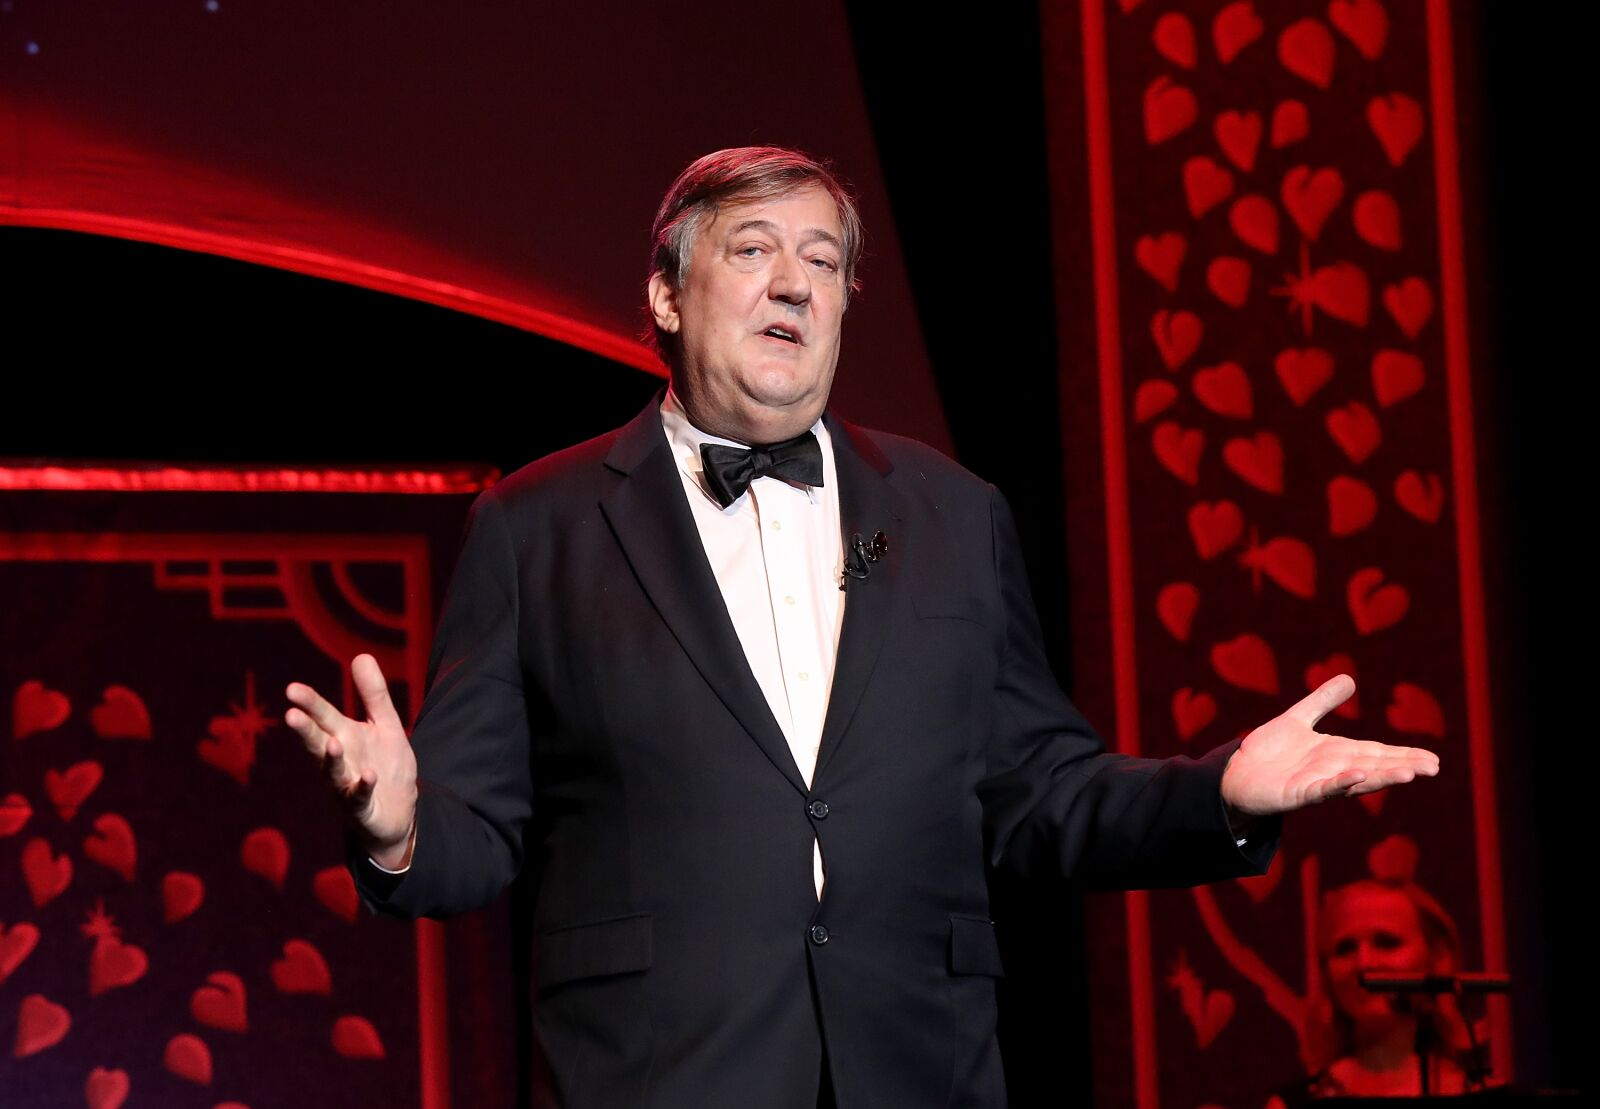 Doctor Who: Stephen Fry and Sir Lenny Henry CBE to feature in Series 12!